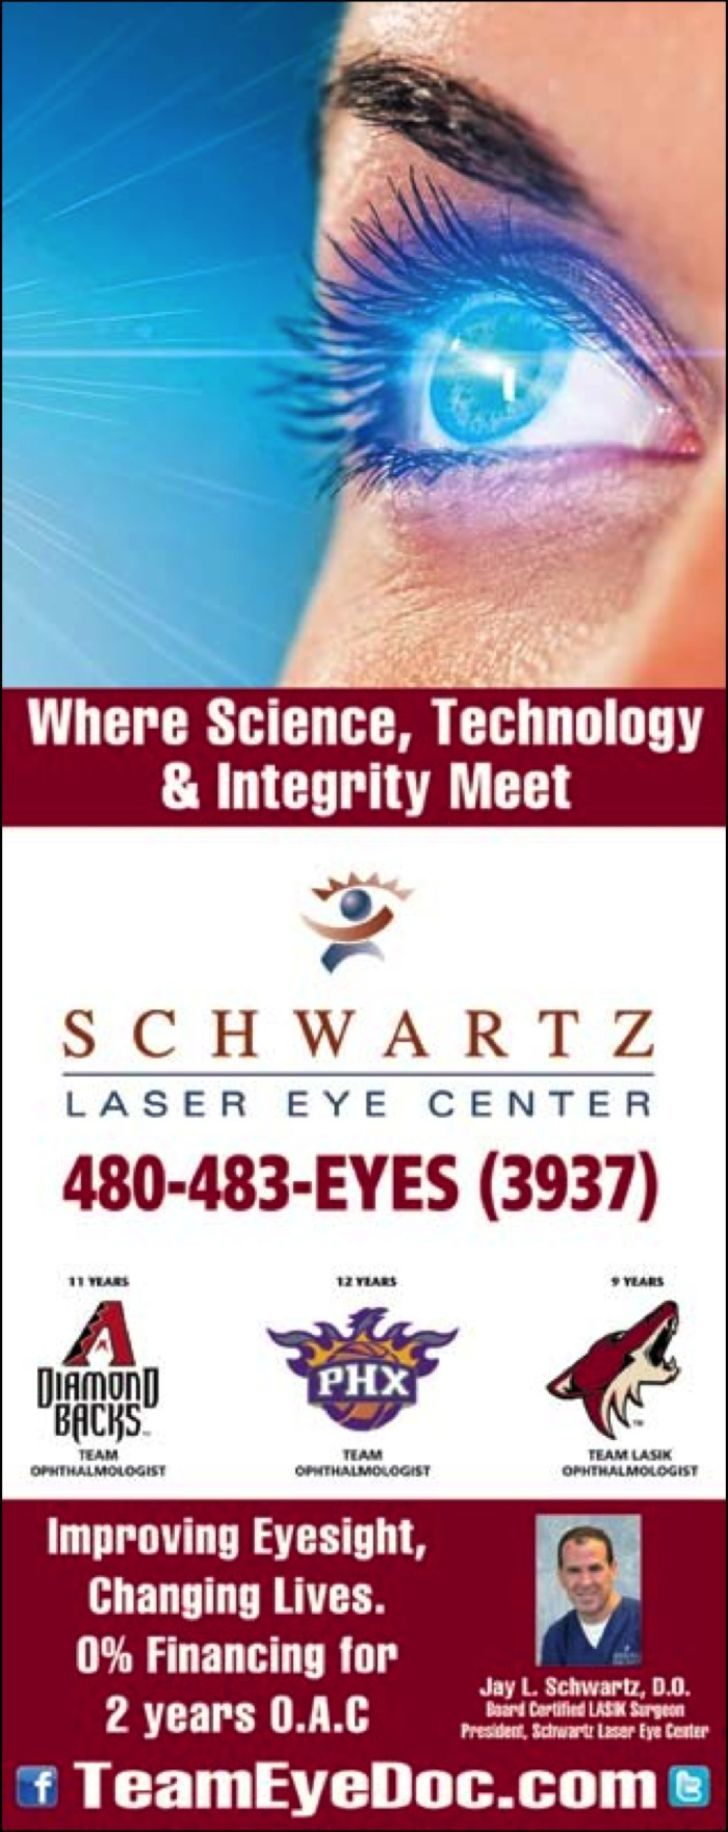 Schwartz Laser Eye Center